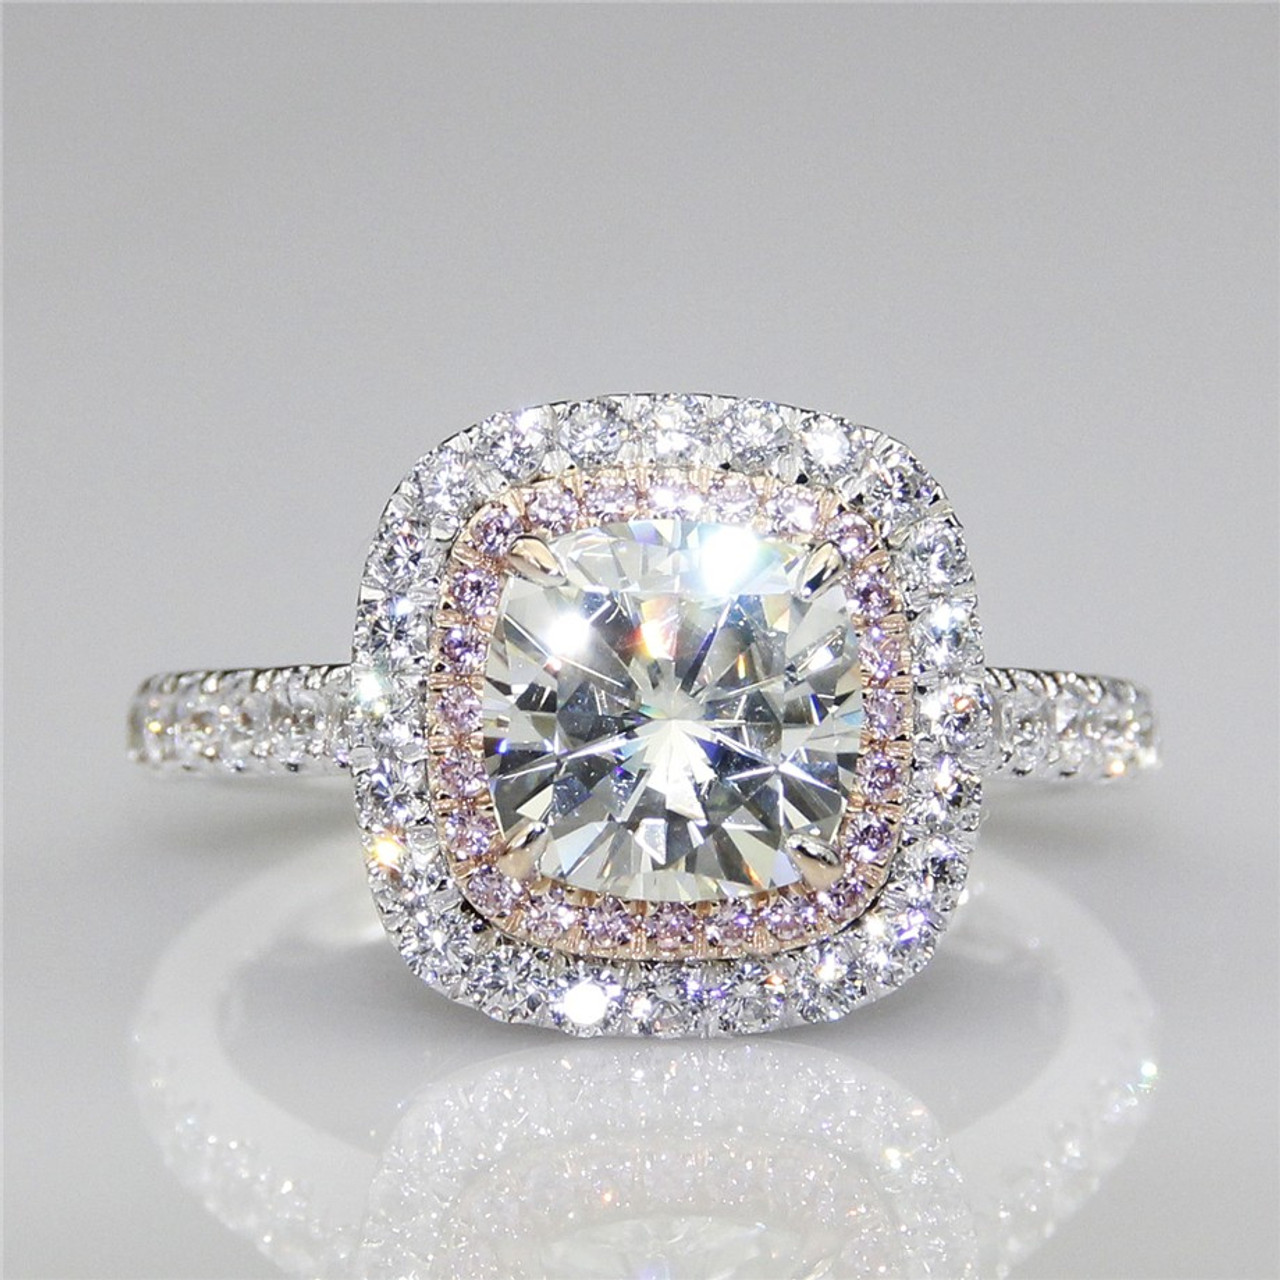 prong rockher rings classic ring white in cut engagement platinum petite cushion ct jewellery double diamond split